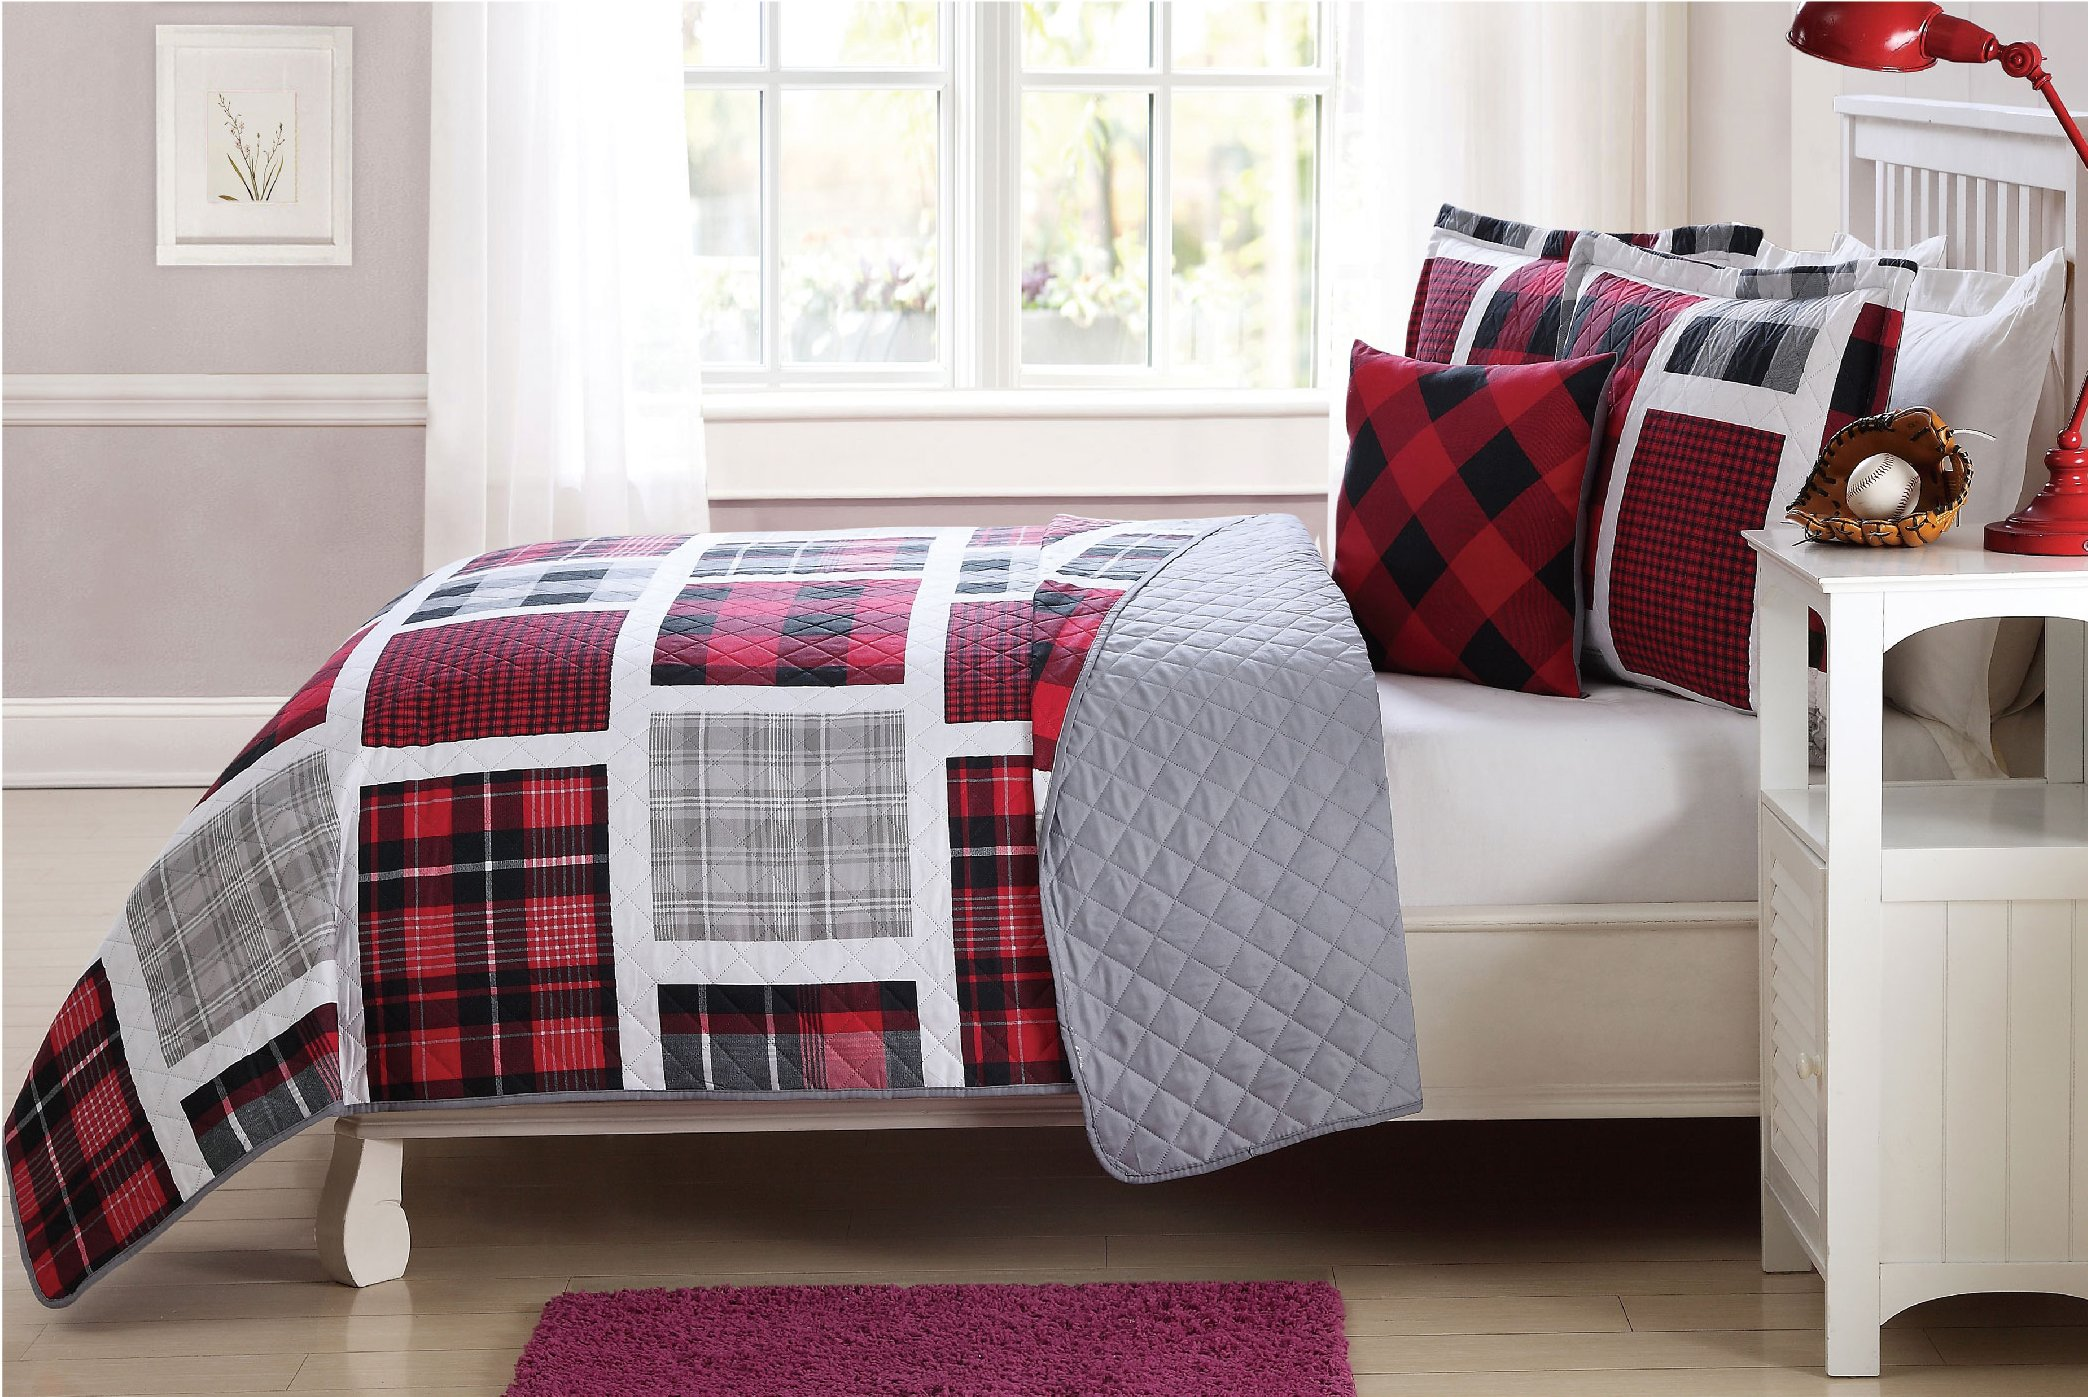 Sapphire Home 5pc Kids Teens Twin Bedspread Quilt Set with Matching Curtains Panels 84'' Length, Gray Red Black Plaid Coverlet for Boys Girls, Twin Plaid Quilt by Sapphire Home